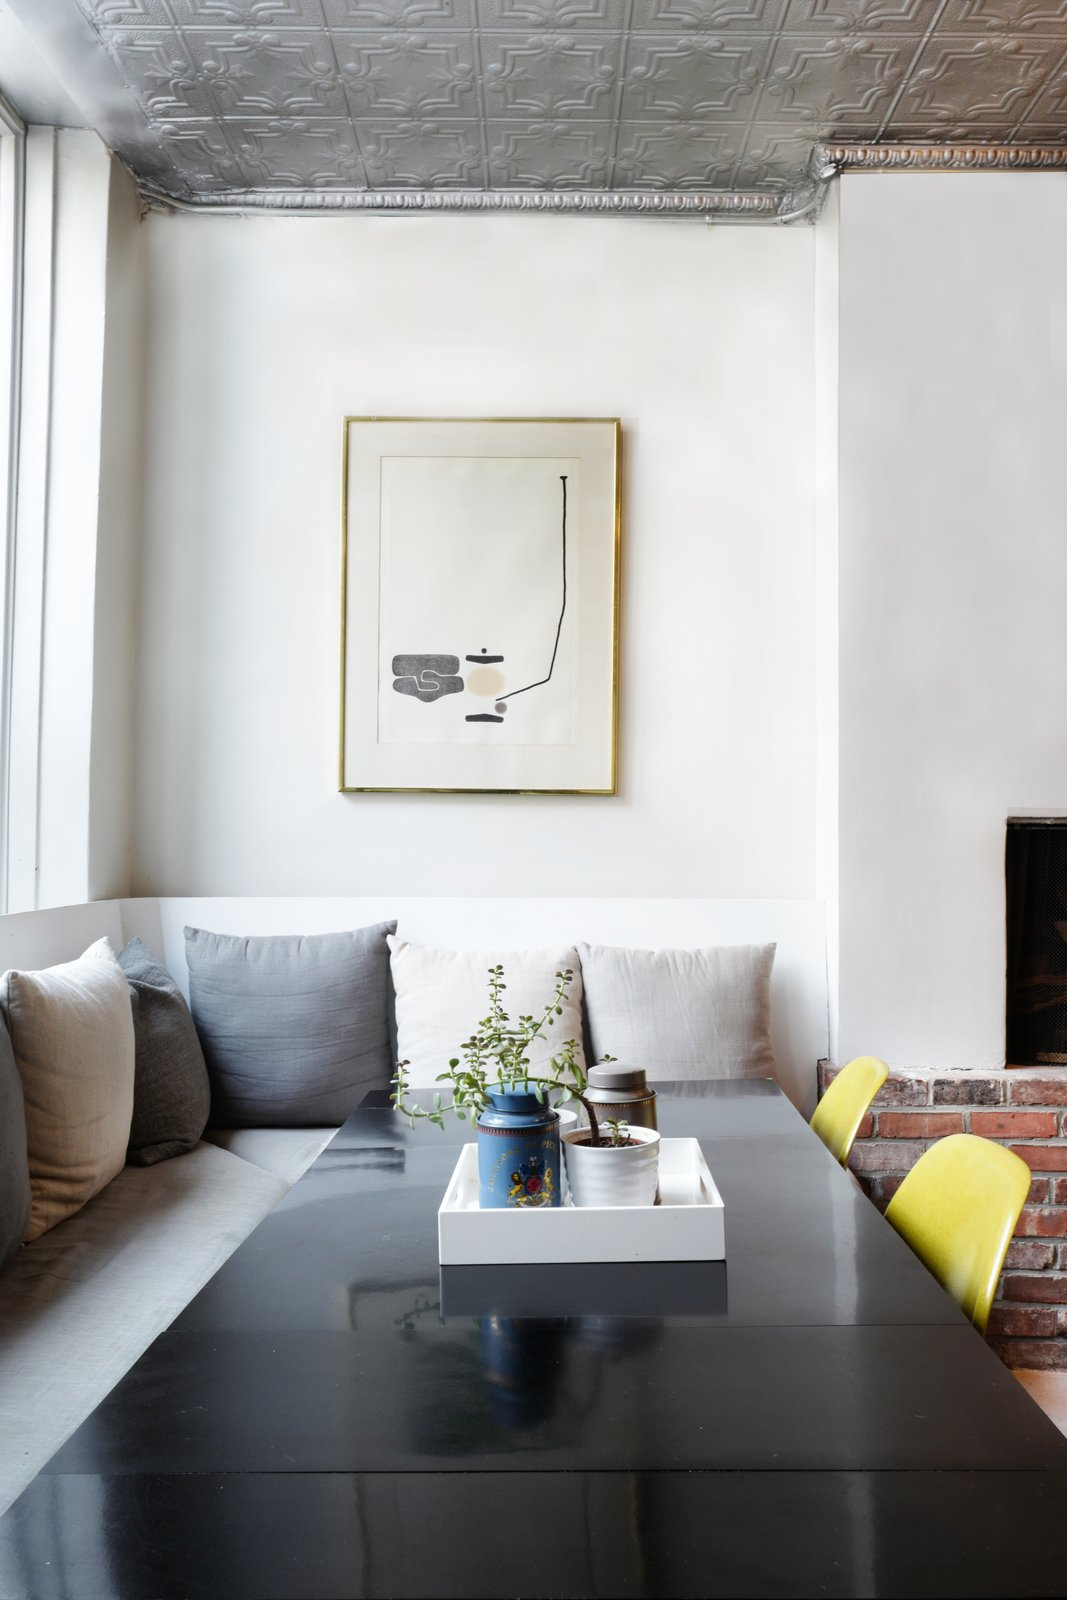 Photo 9 of 16 in A Design Duo's 19th-Century Brooklyn Townhouse Is Filled With Art They Love